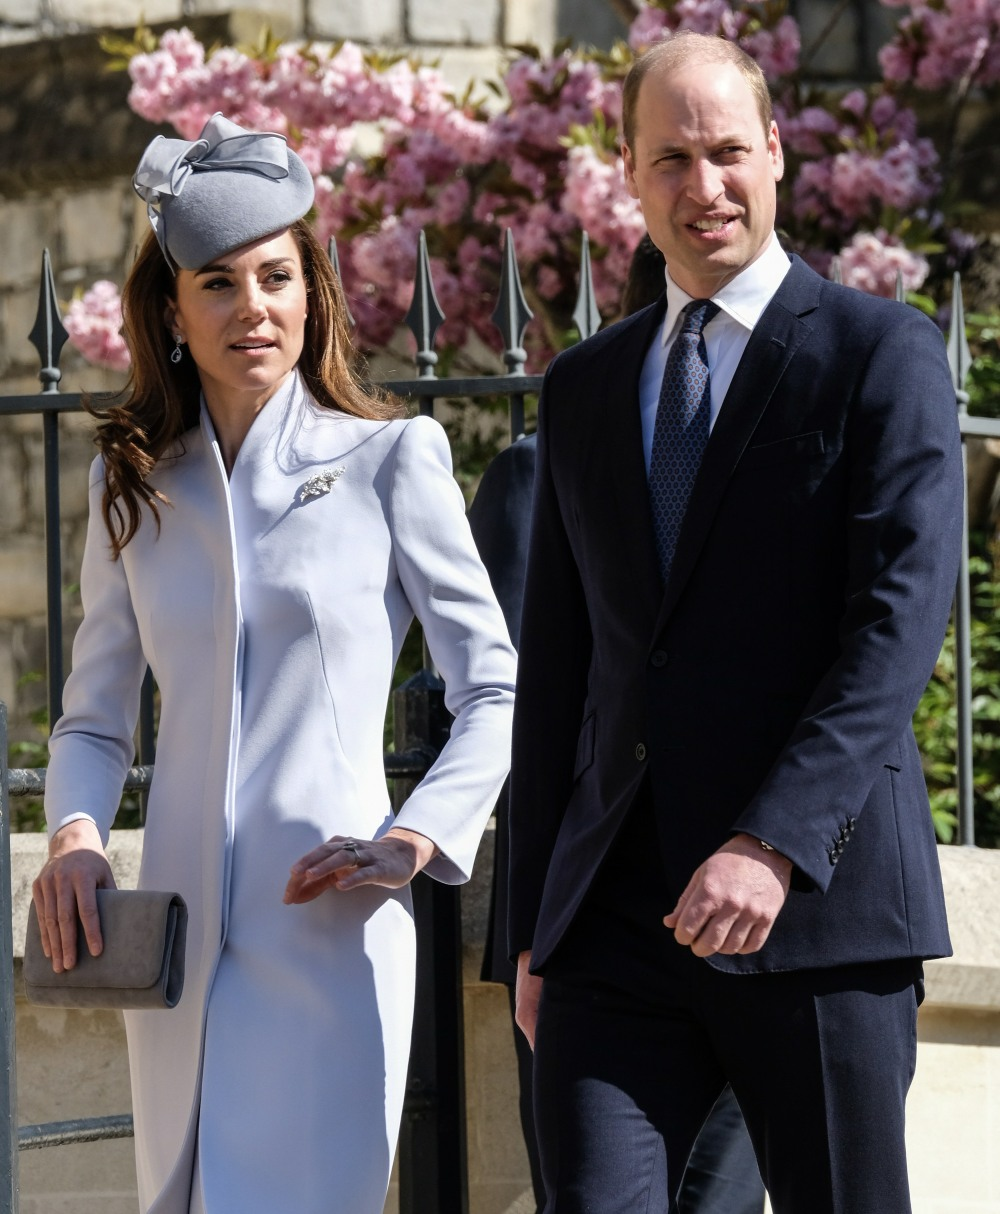 Kate, Duchess of Cambridge, Prince William, Duke of Cambridge arrives at the Easter Sunday church service at St.George's Chapel in Windsor Castle on Sunday April 21, 2019